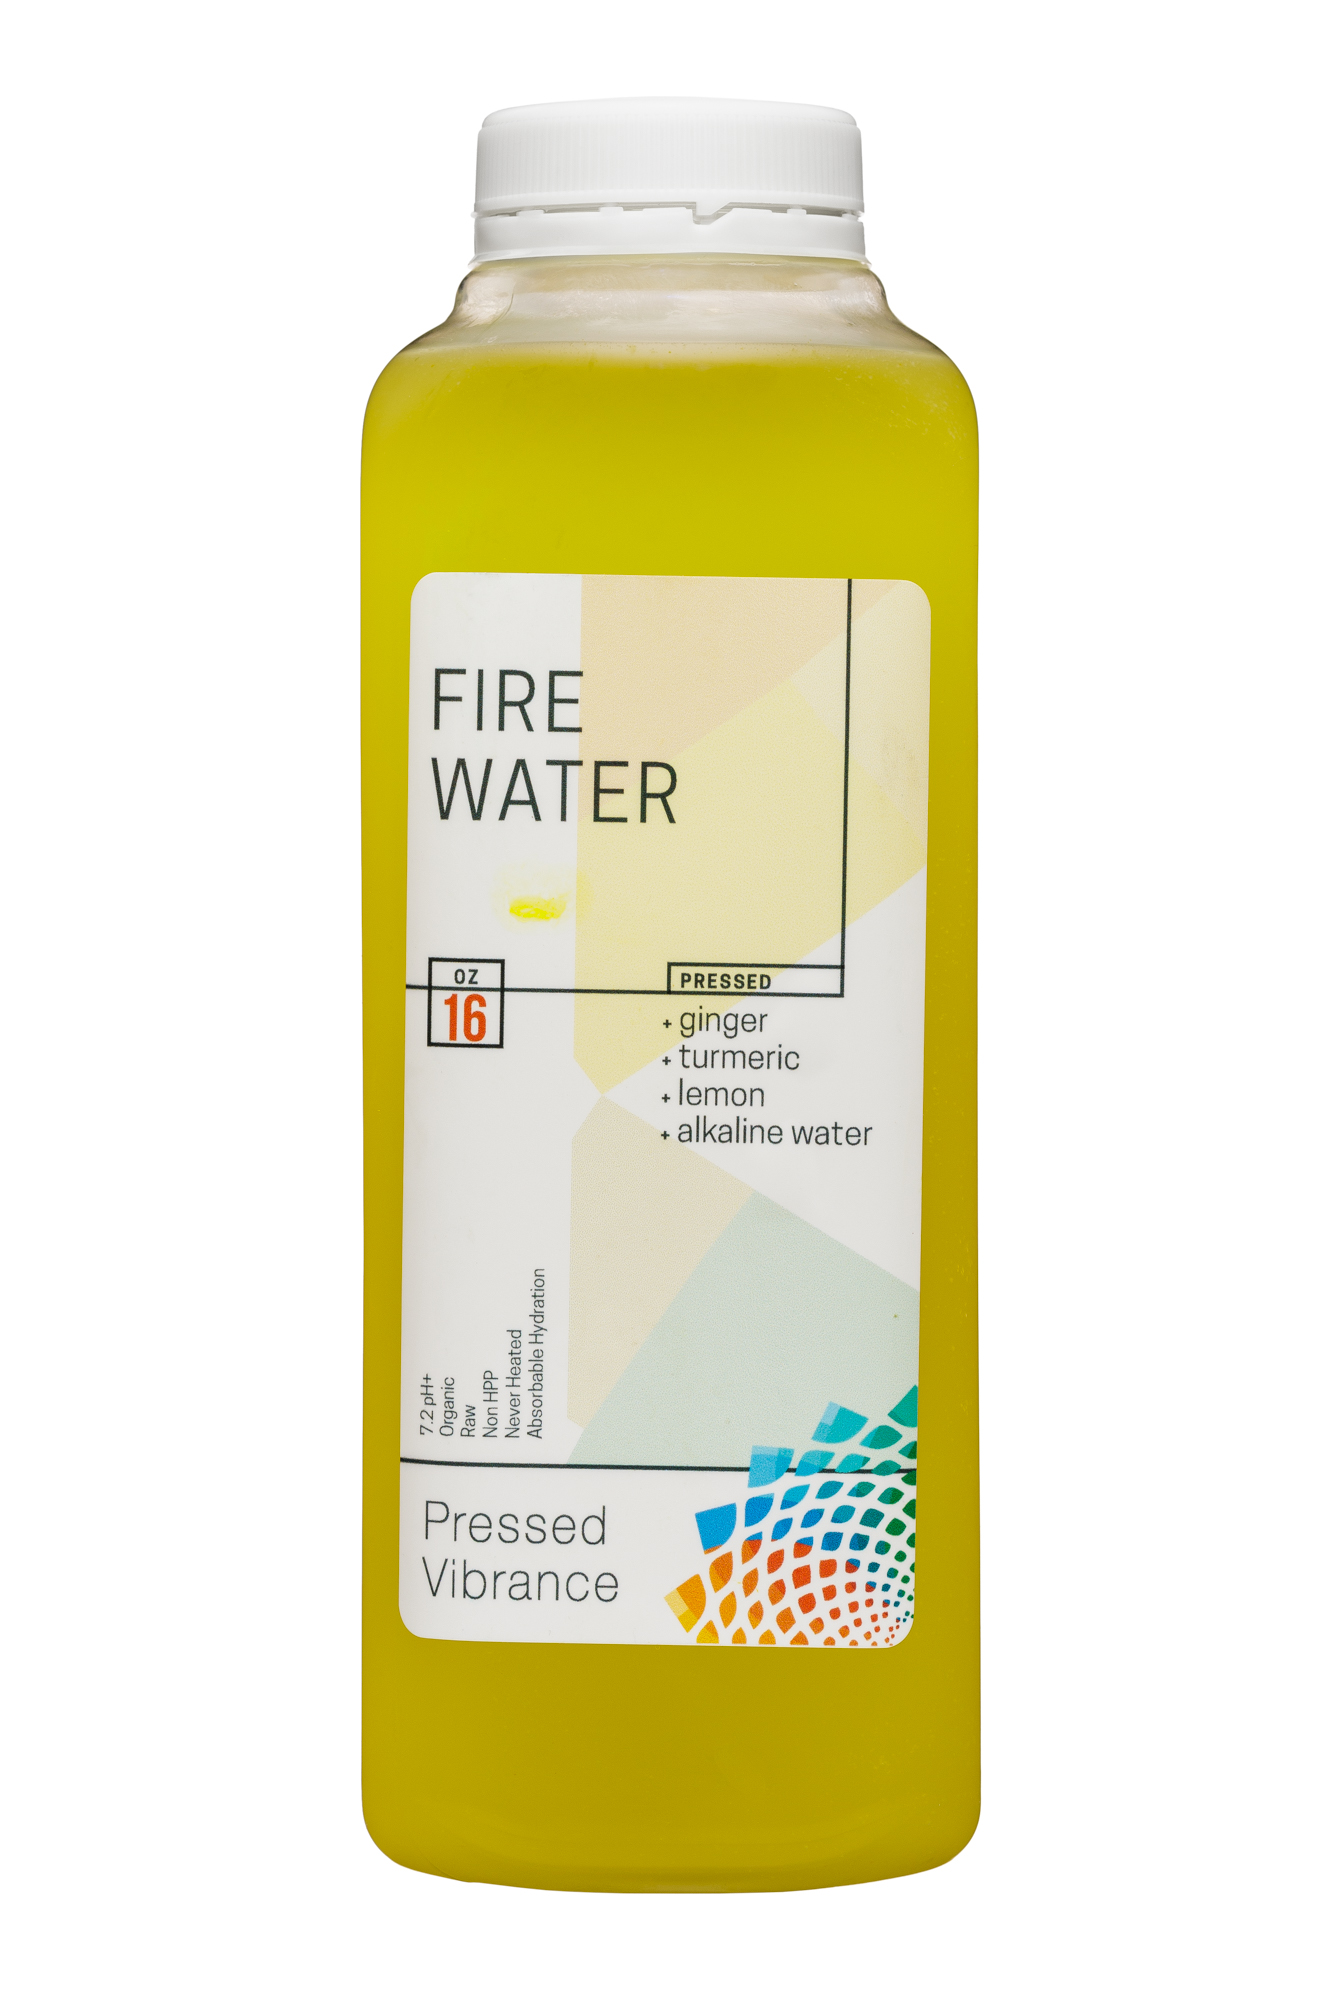 Pressed Vibrance: PressedVibrance-16oz-FireWater